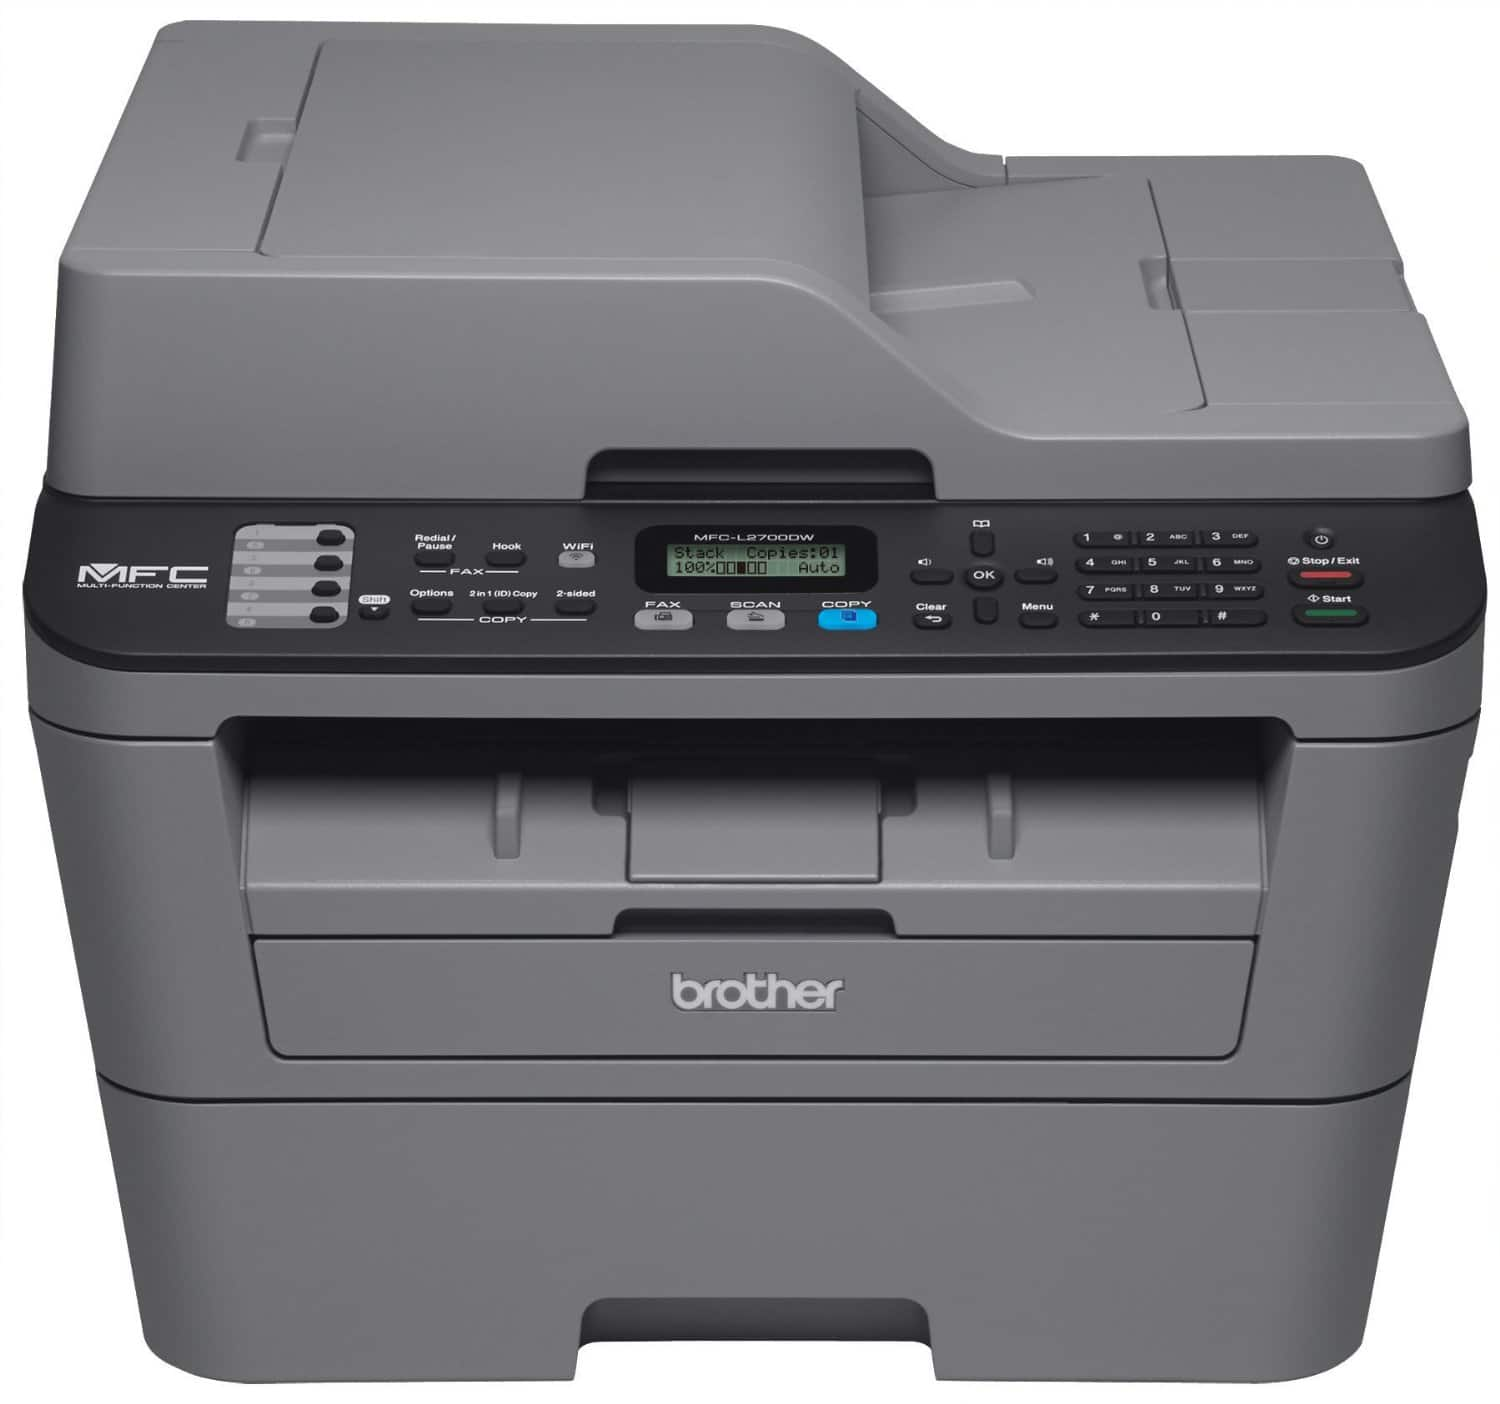 Brother MFCL2700DW Compact Laser All-In One Printer with Wireless Networking and Duplex Printing $109.99 @amazon